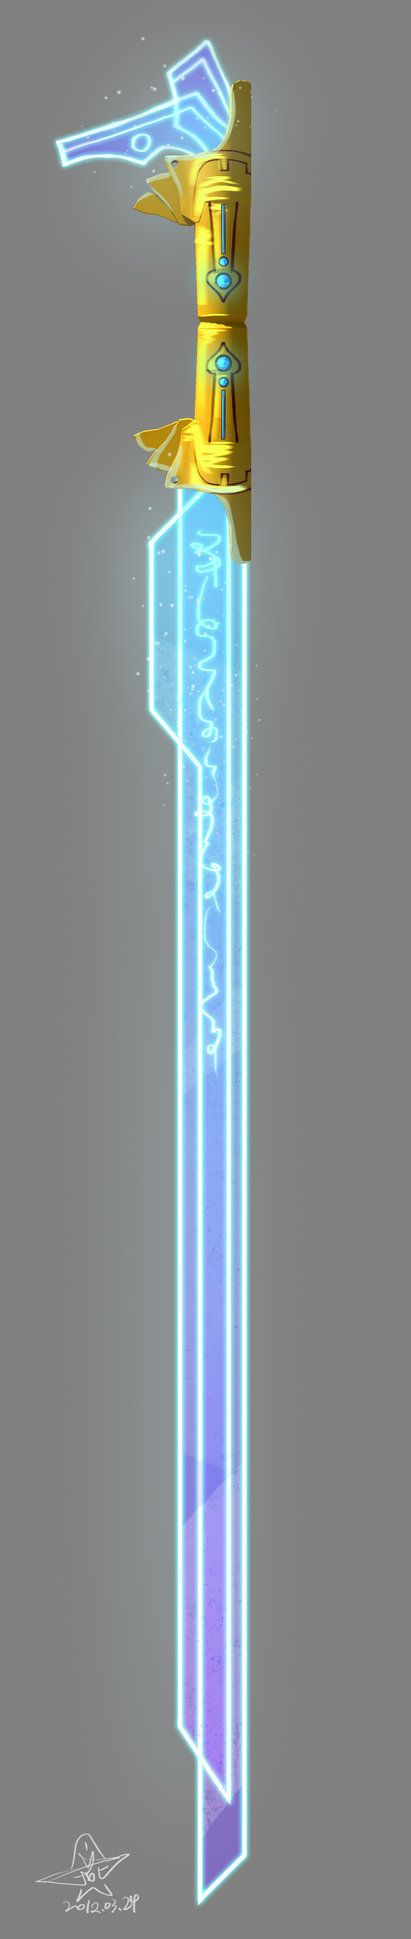 the plasma sword_V1 by yanzi-5 on DeviantArt